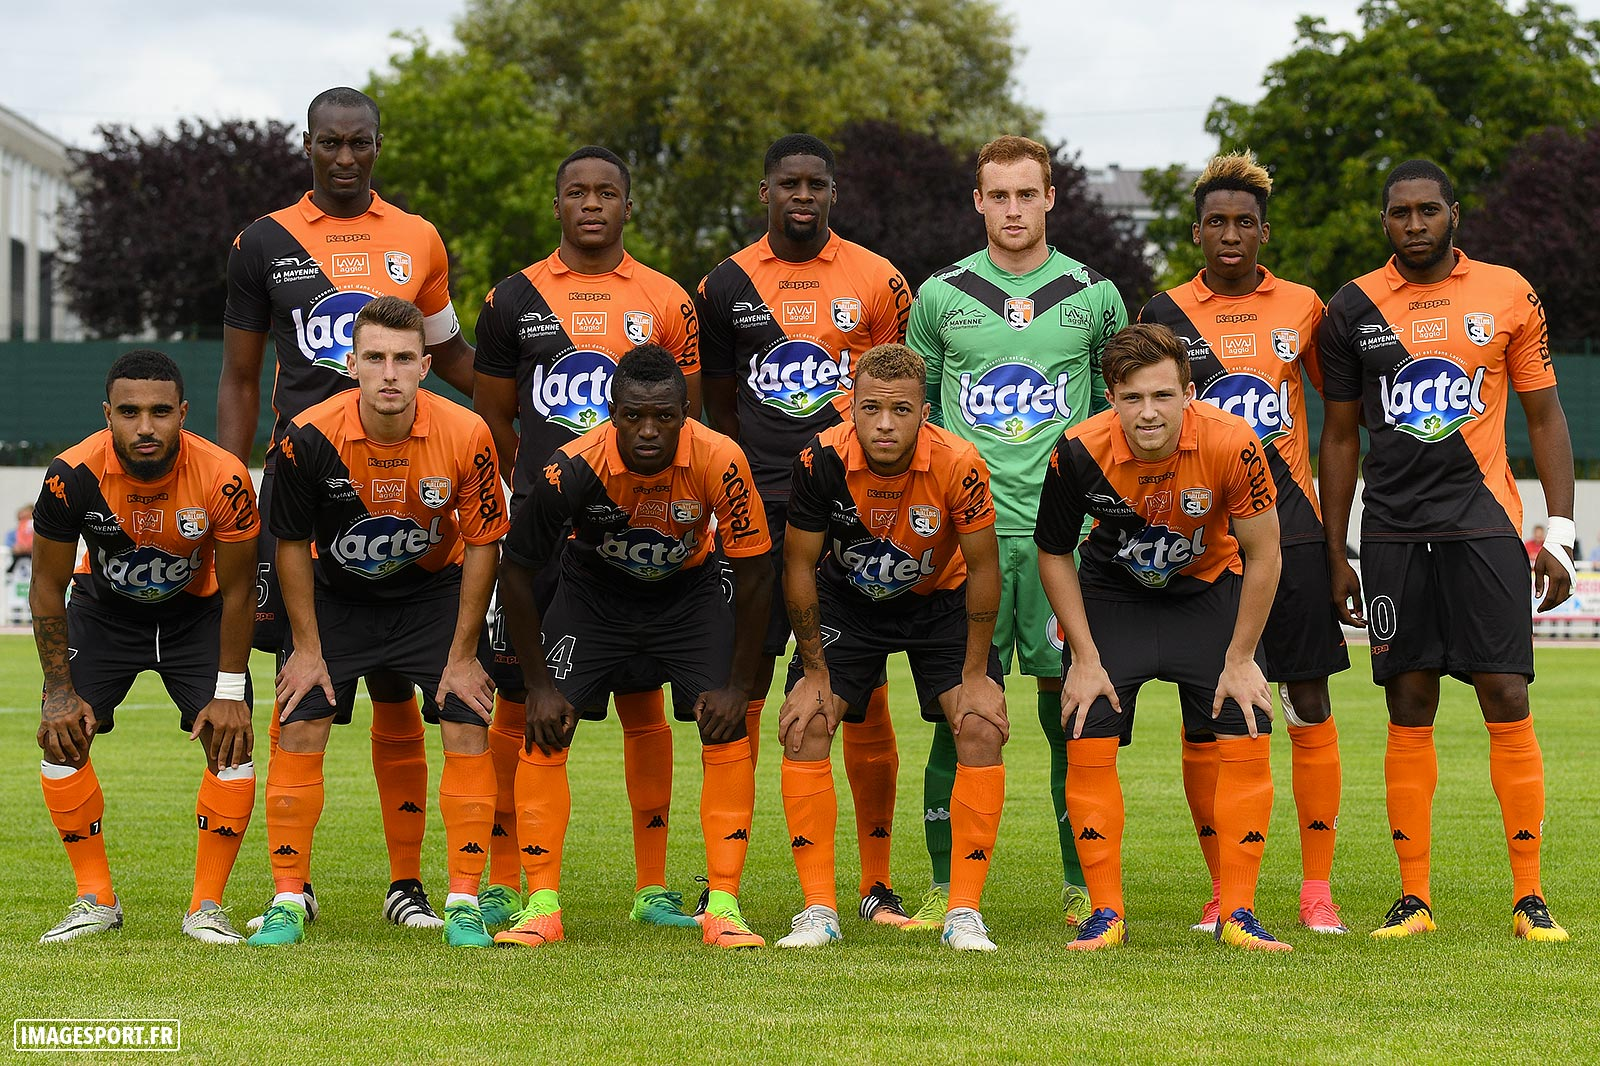 2-stade-lavallois-imagsport